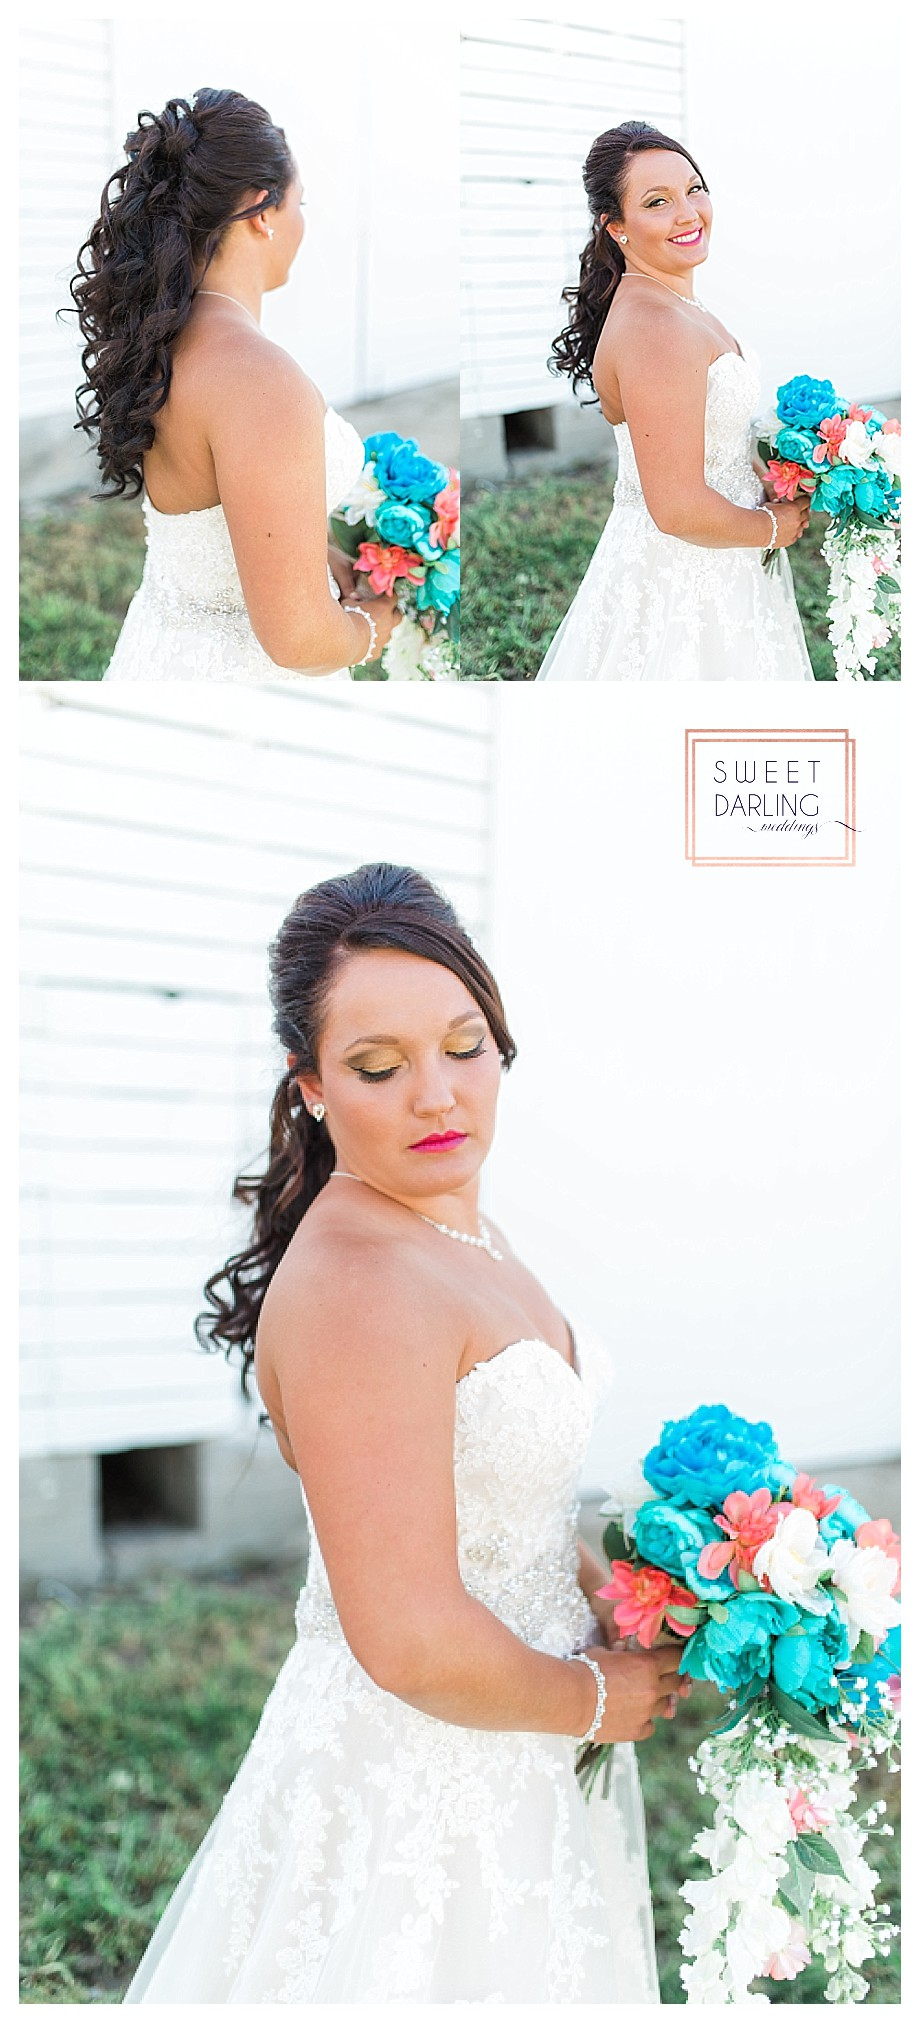 bride in white strapless gown curled hair